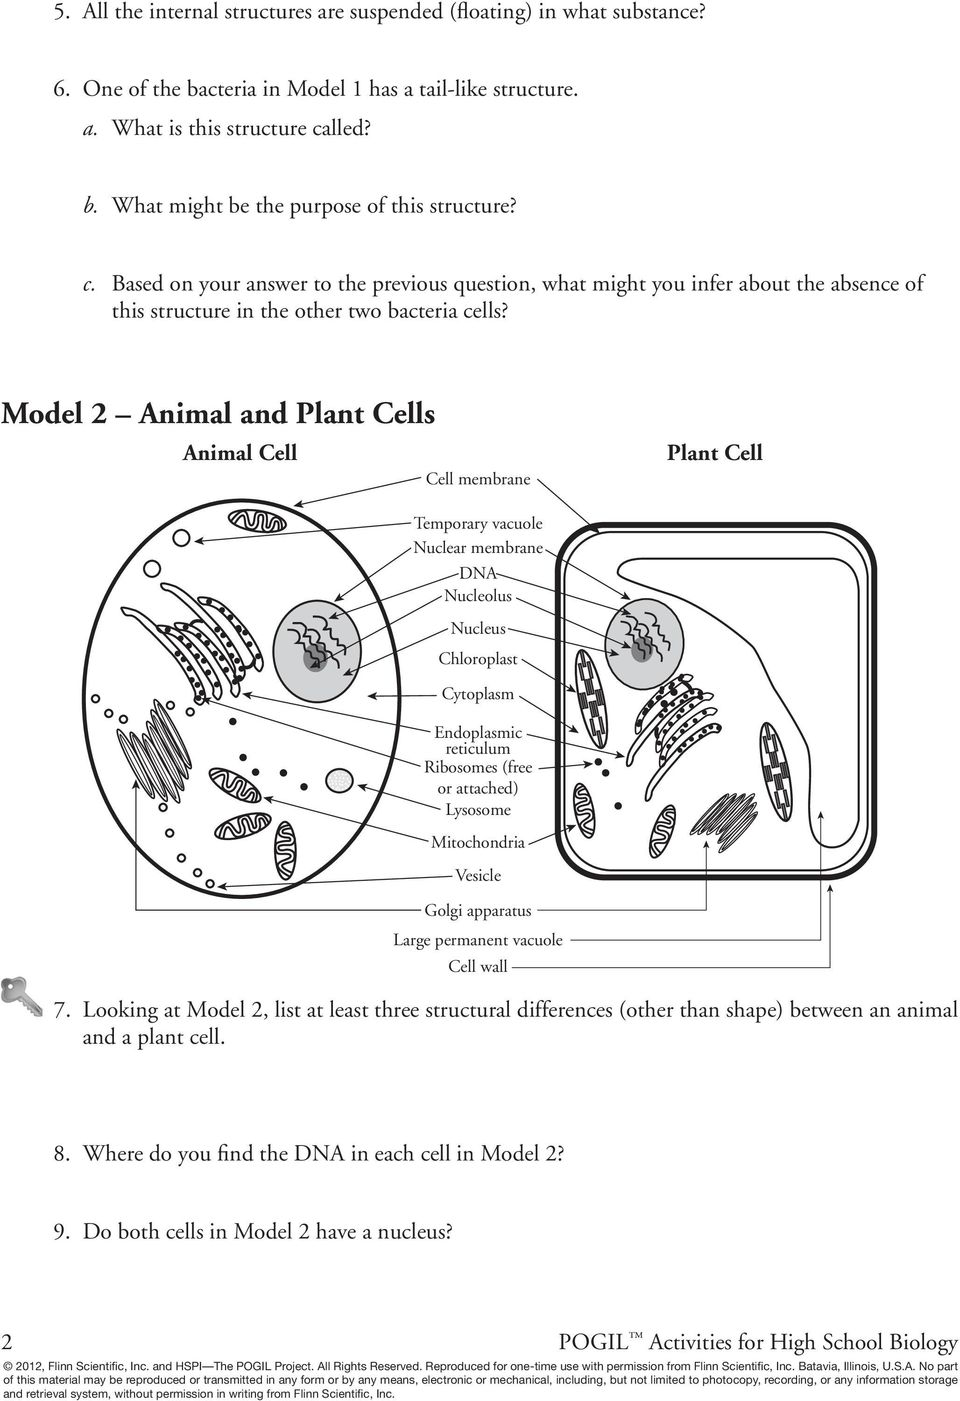 Prokaryotic and Eukaryotic Cells - PDF